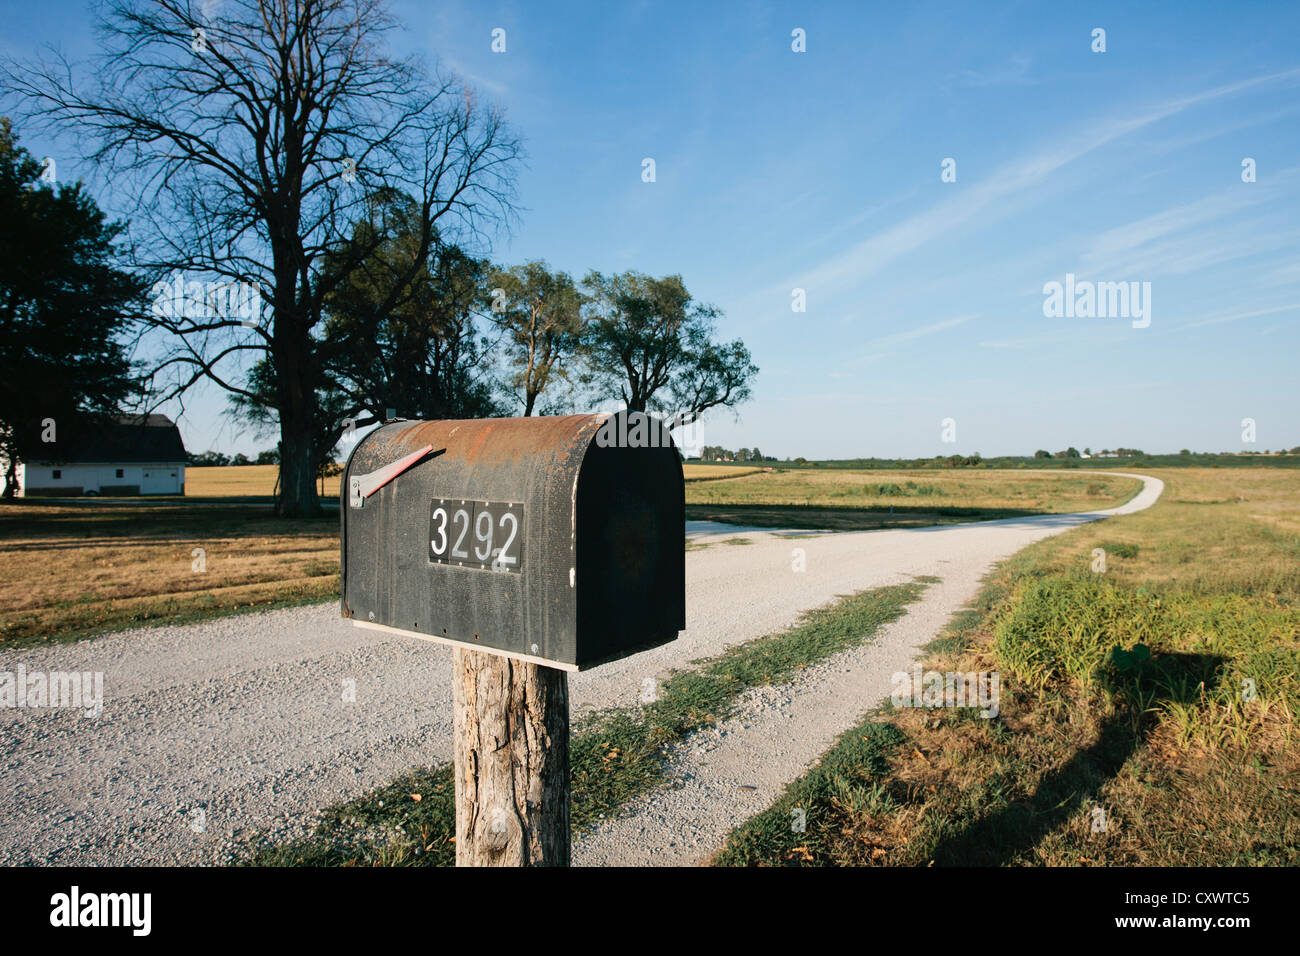 Close up of mailbox on rural dirt road - Stock Image